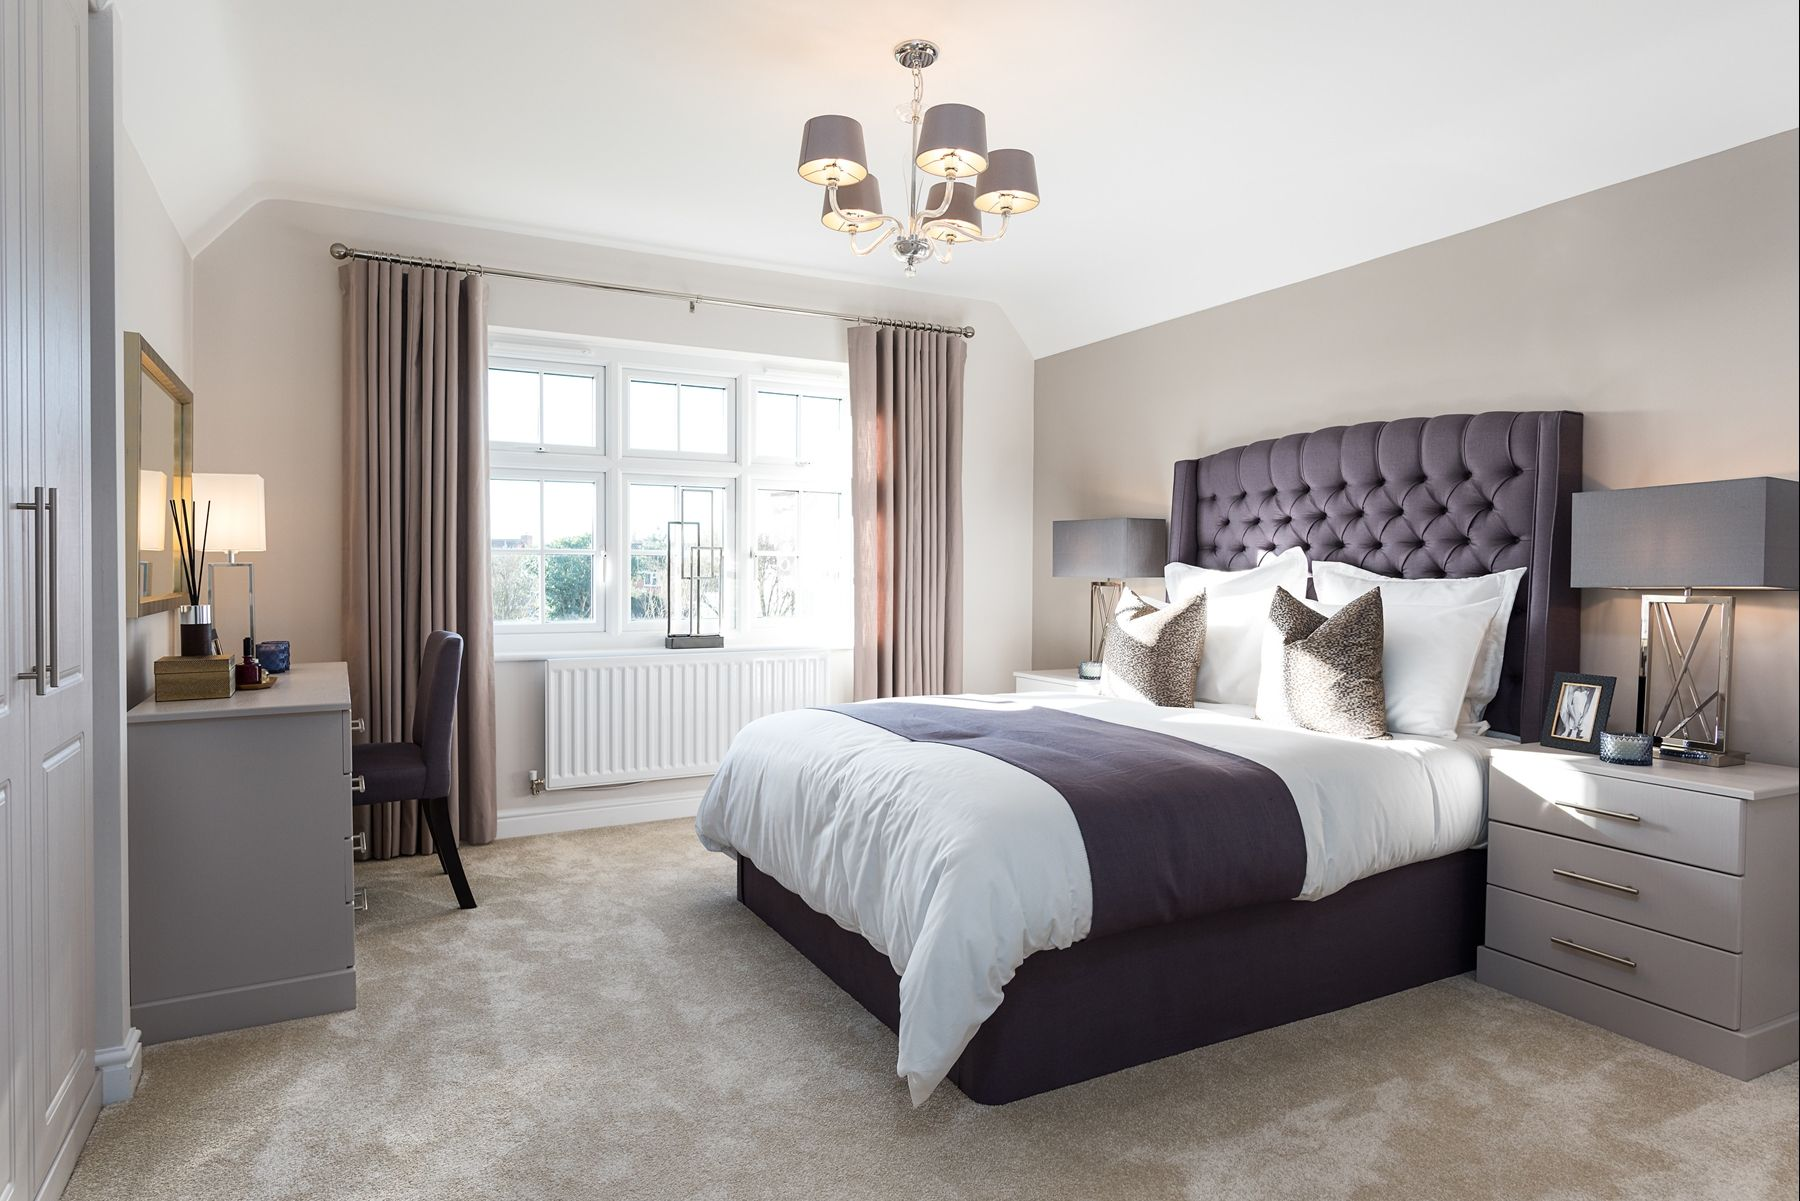 We Love The Rich Tones Of Plum Fabric Contrasted With A Pebble Grey Feature Wall